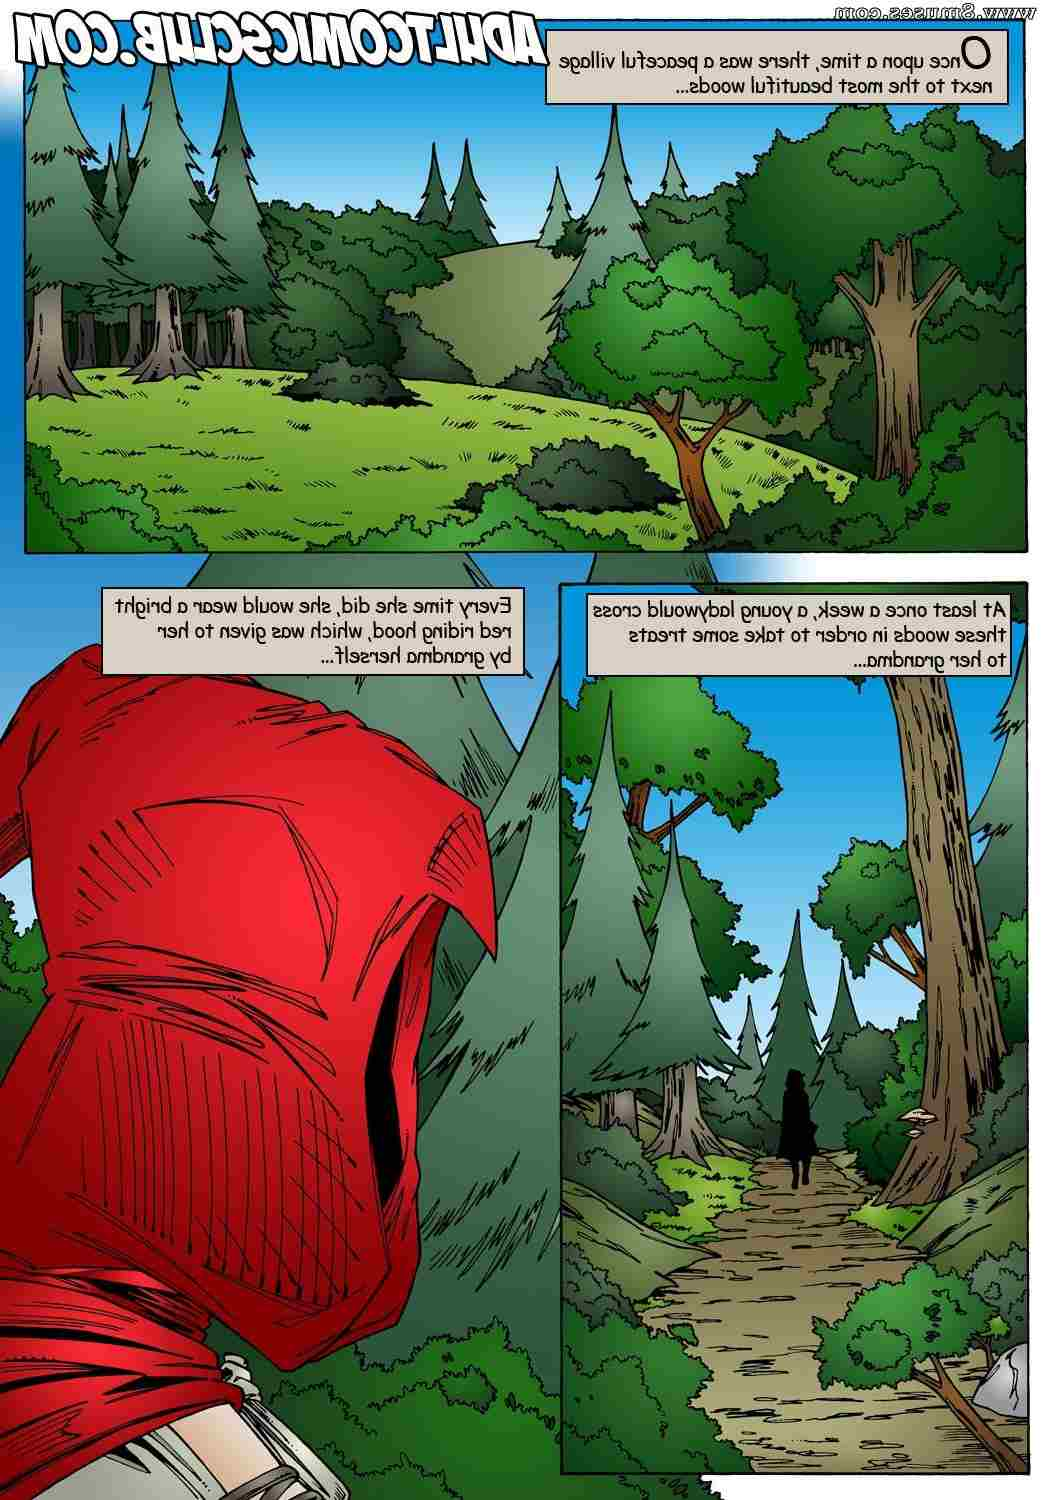 AdultComicsClub_com-Collection/Little-Red-Riding-Hood Little_Red_Riding_Hood__8muses_-_Sex_and_Porn_Comics.jpg